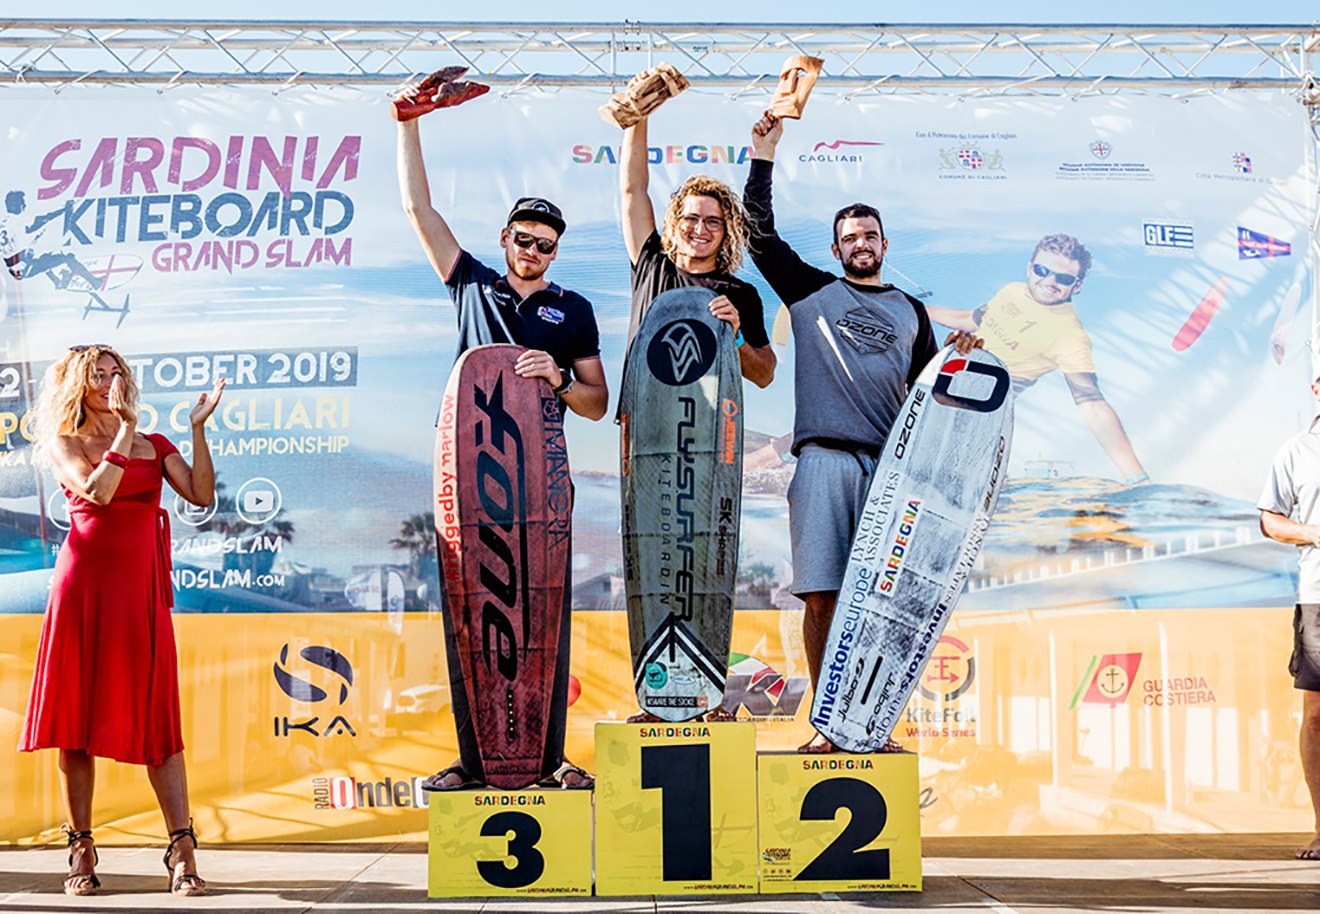 Connor Bainbridge (left) won bronze in Act 4 of the Kitefoil Gold Cup.